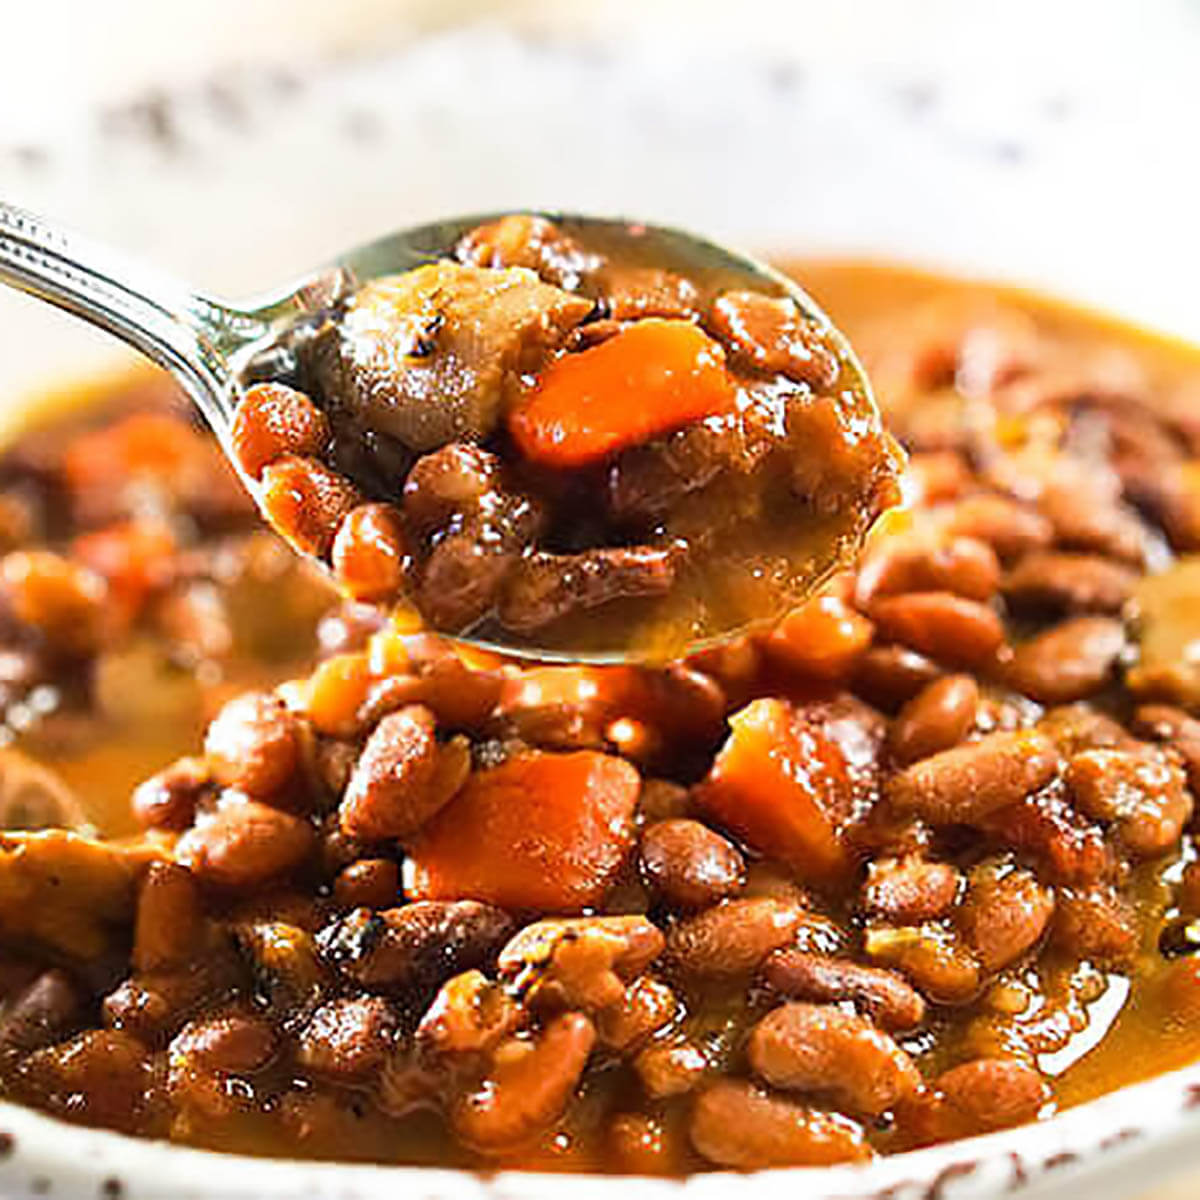 Brown Bean Soup in bowl with spoon.